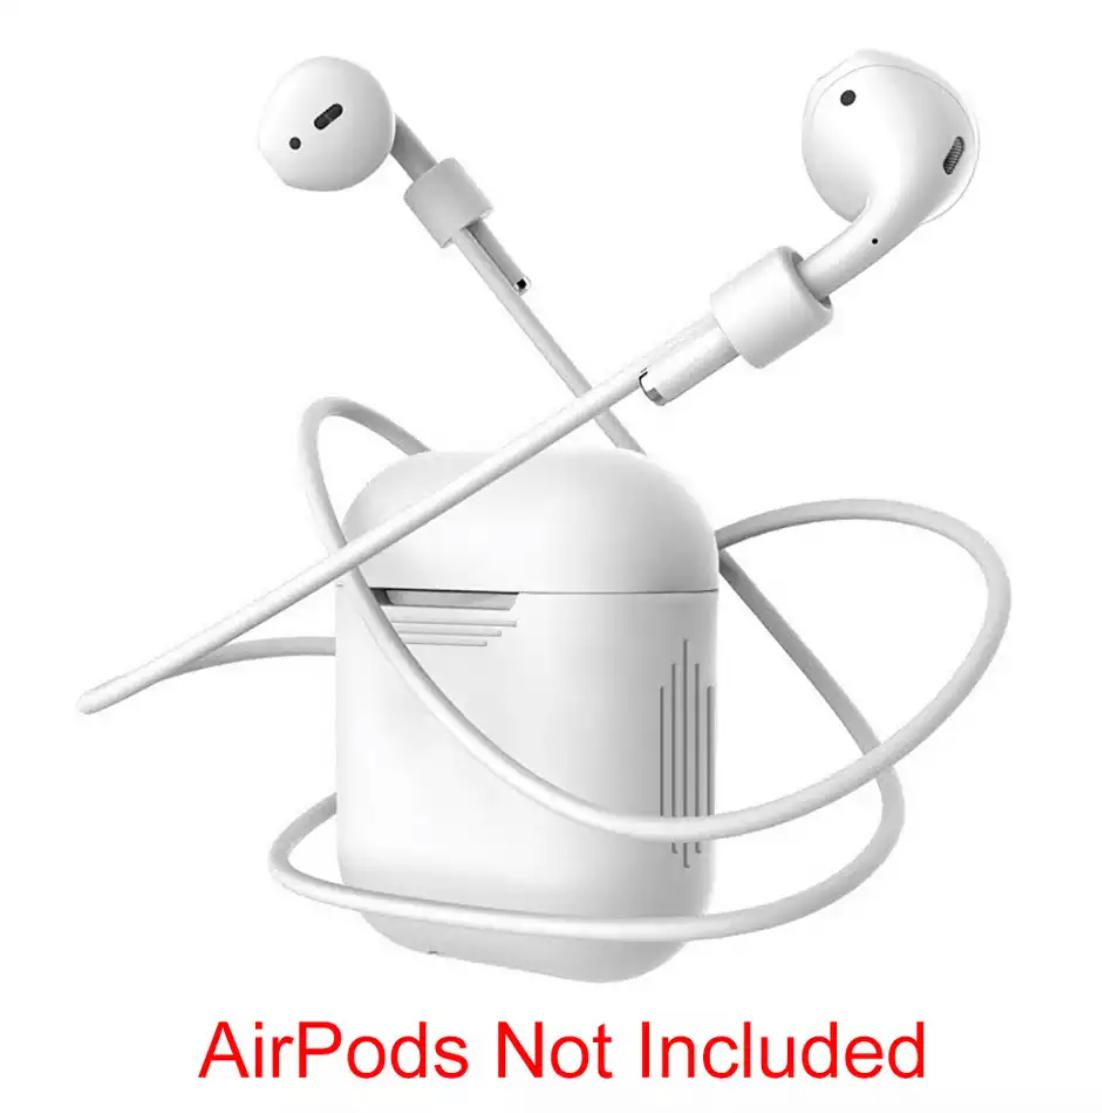 Anti-lost Bluetooth headphone Case Airpods Soft Silicone